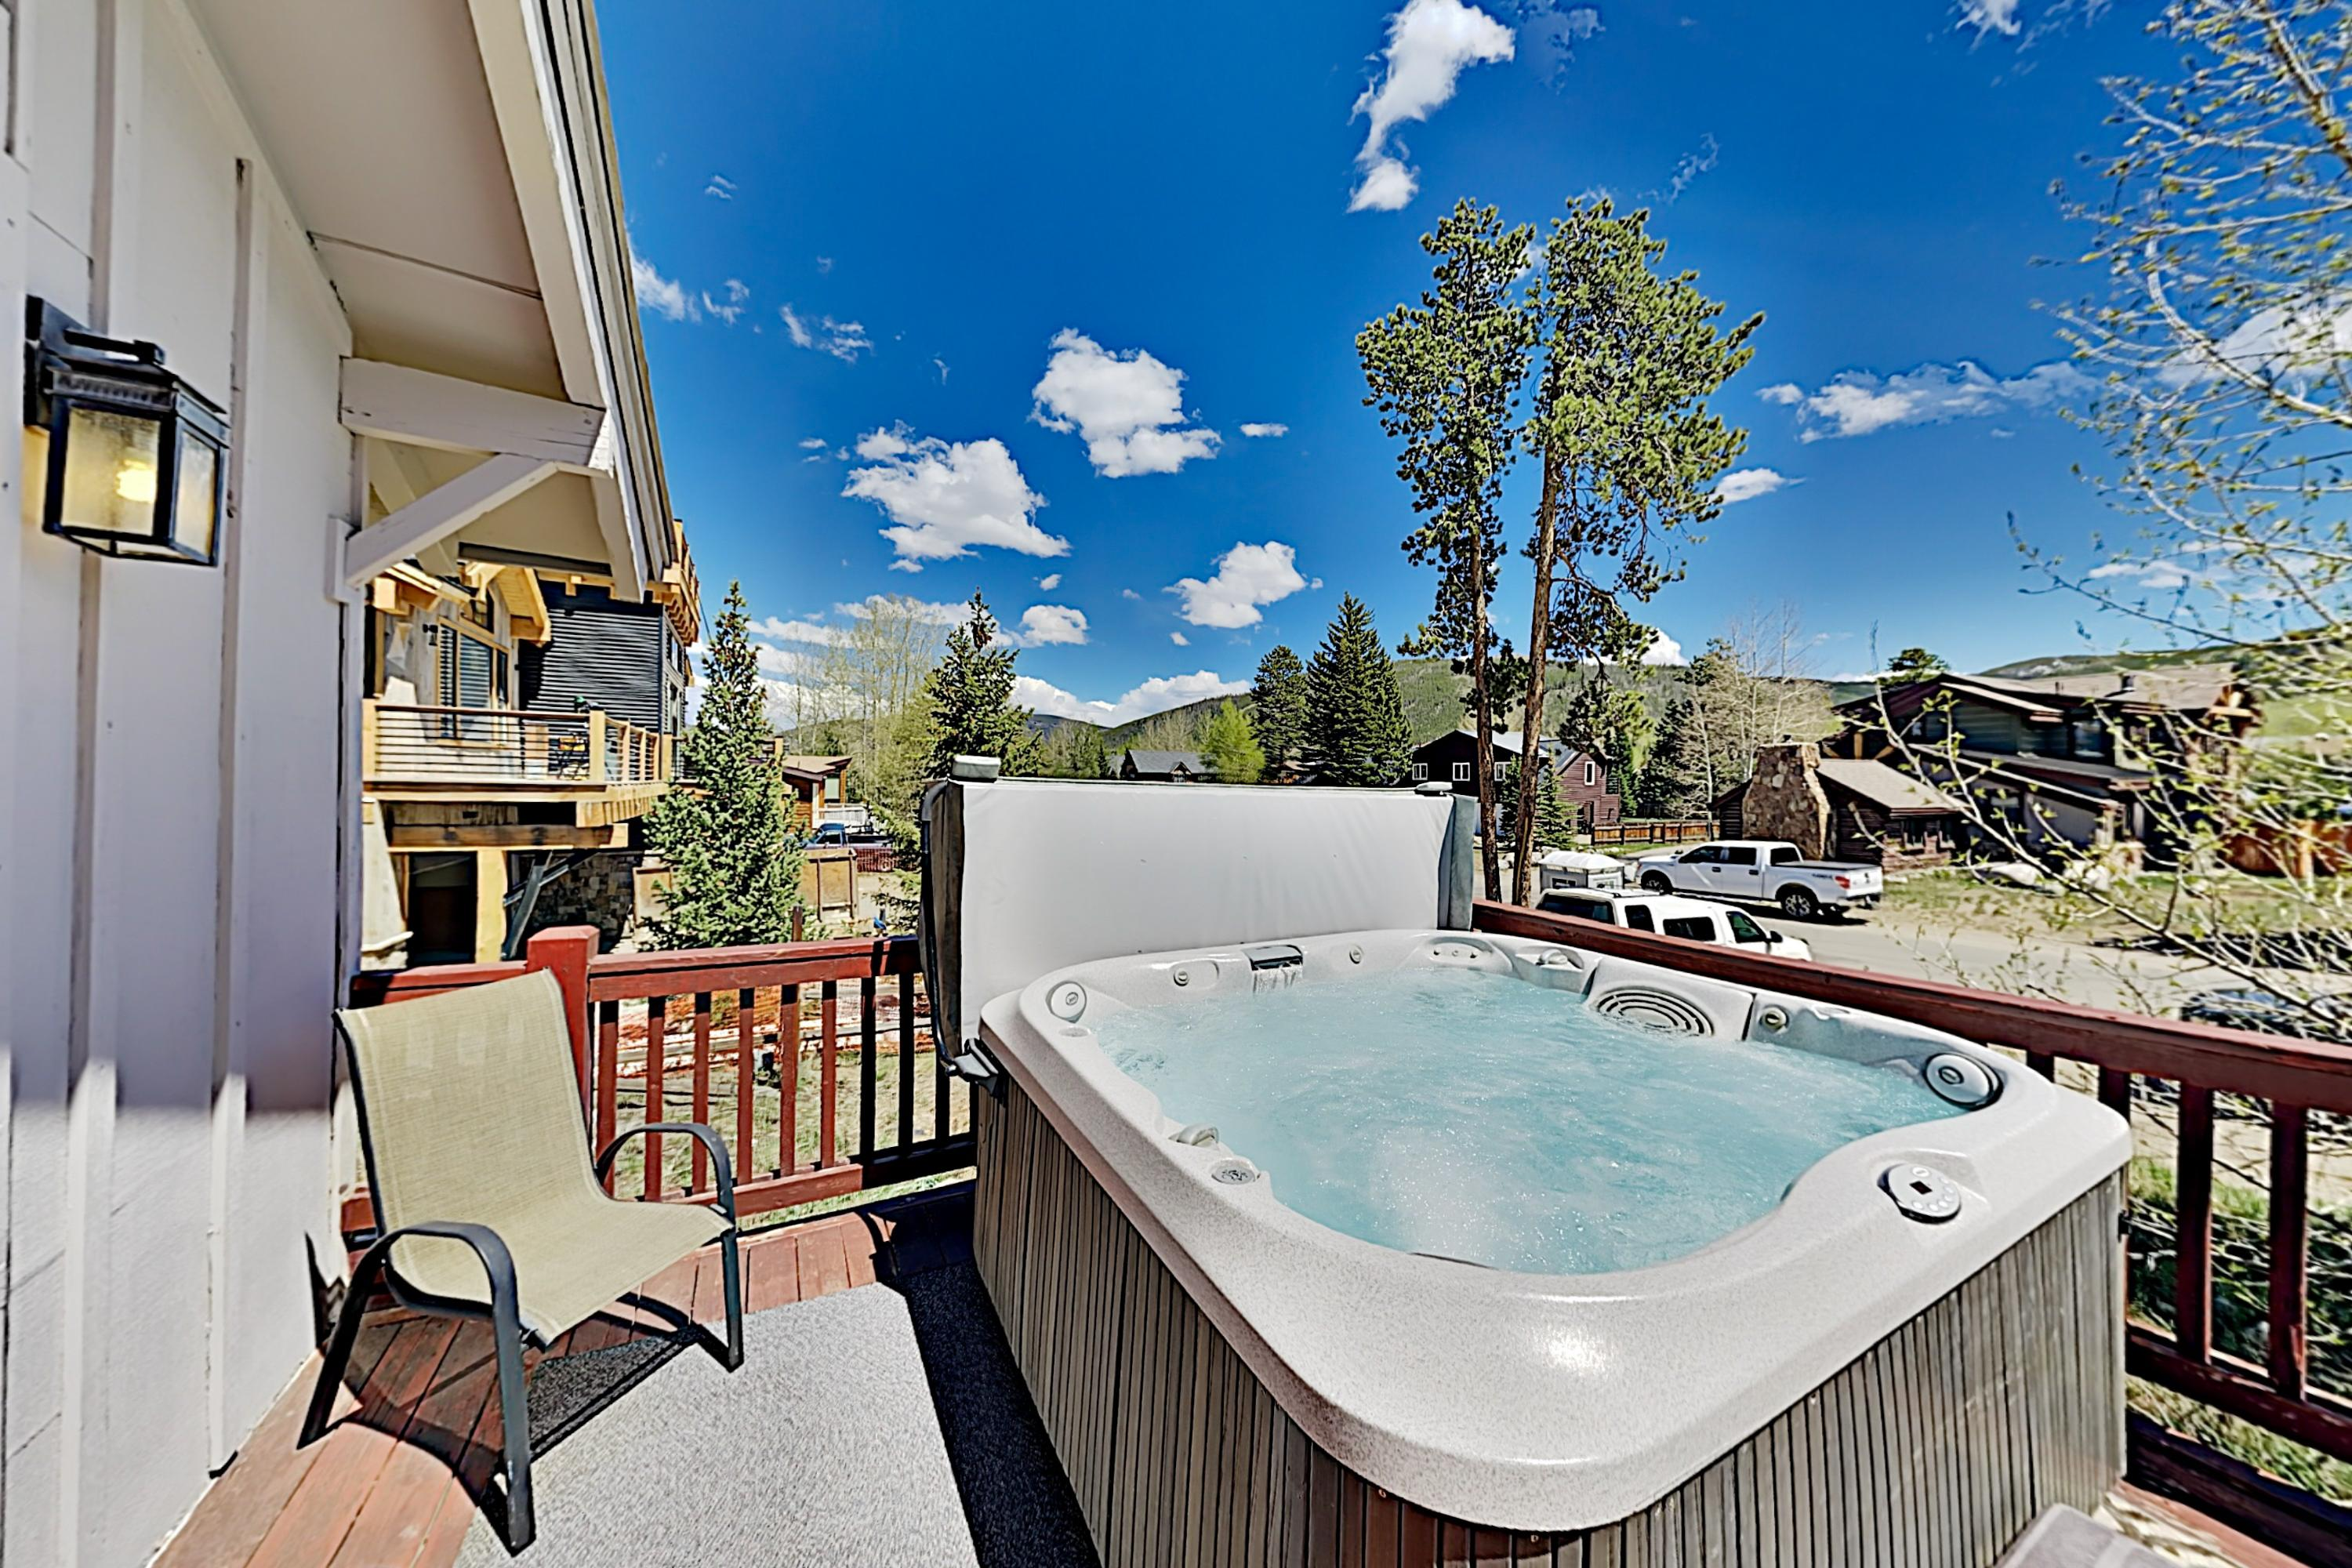 Stunning Luxe Mountain View Home with Private Hot Tub, Near Slopes